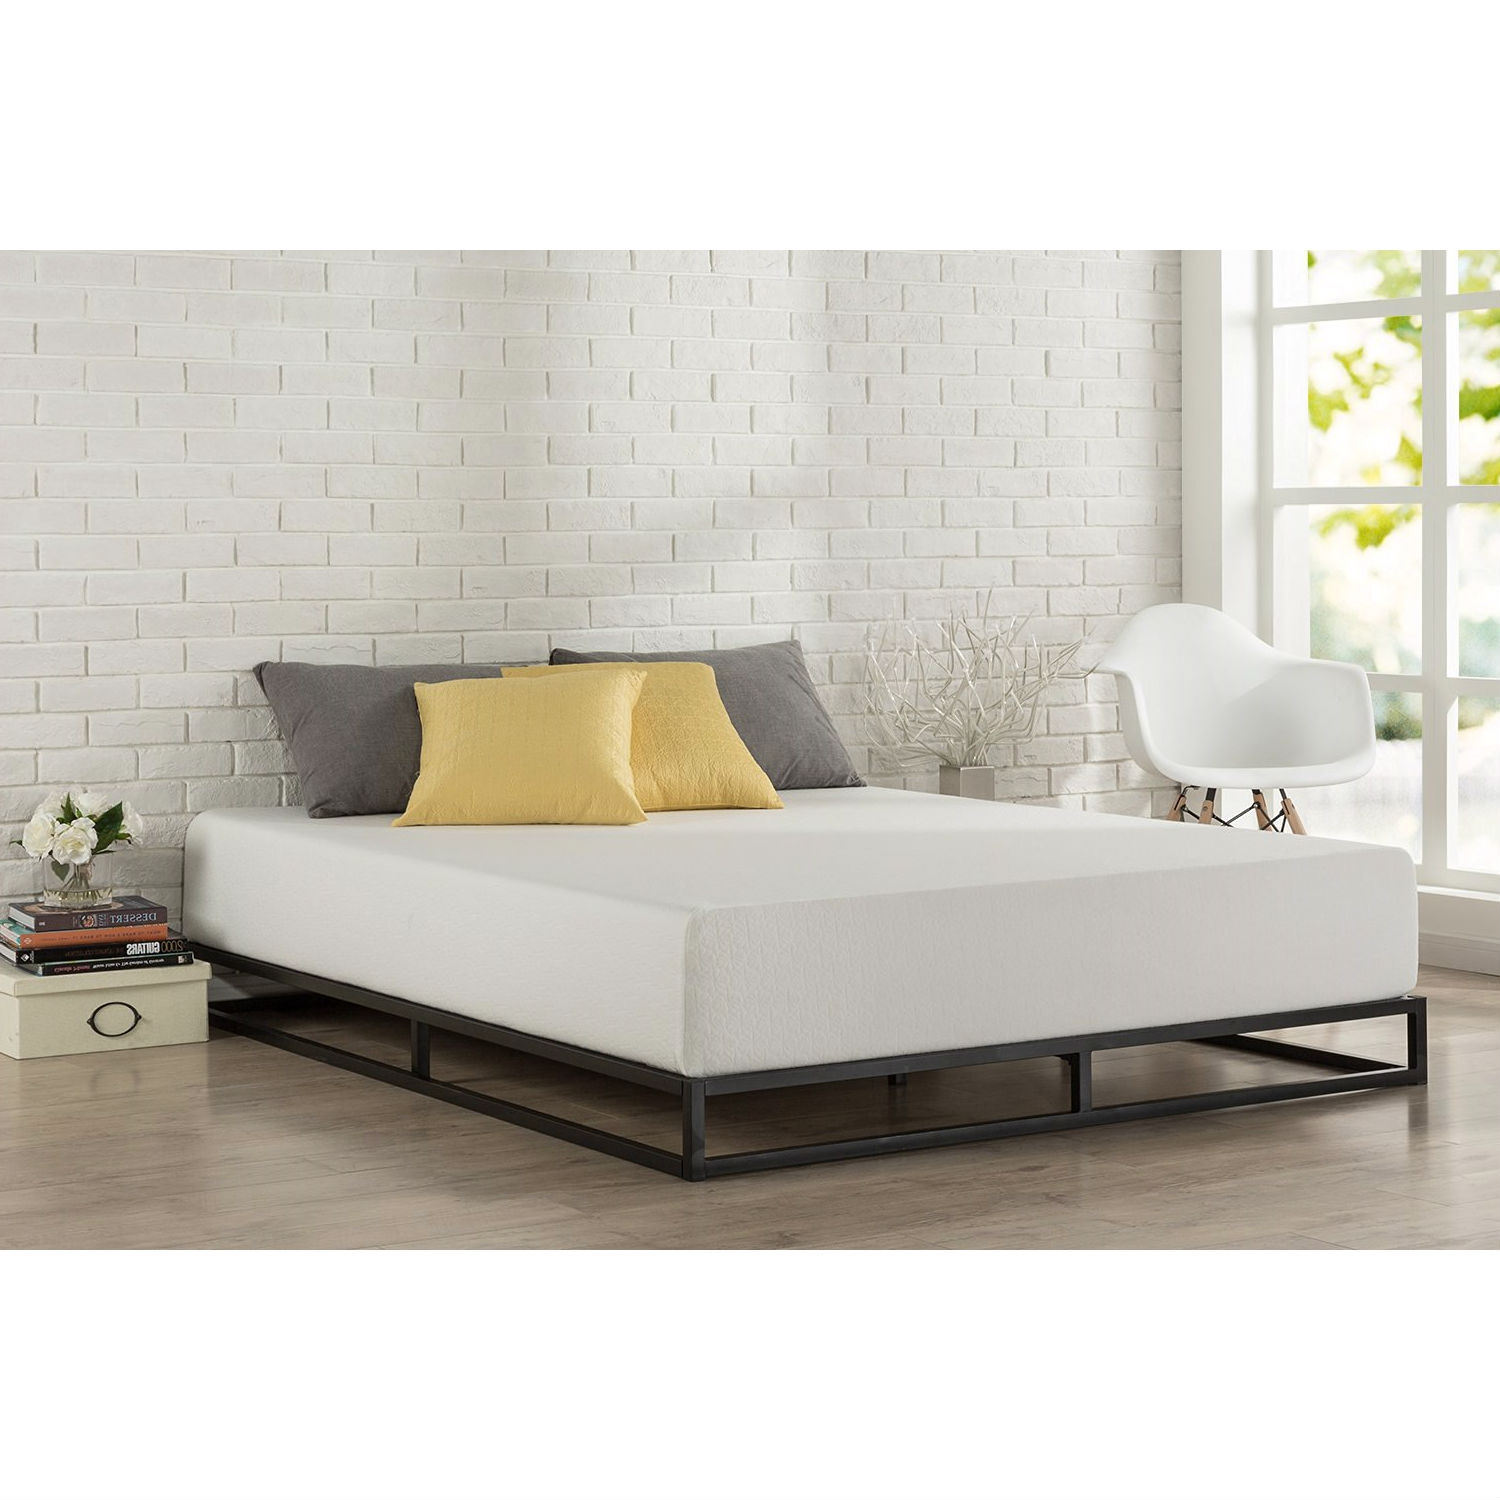 frame platform platformframe metal shipping bed with free